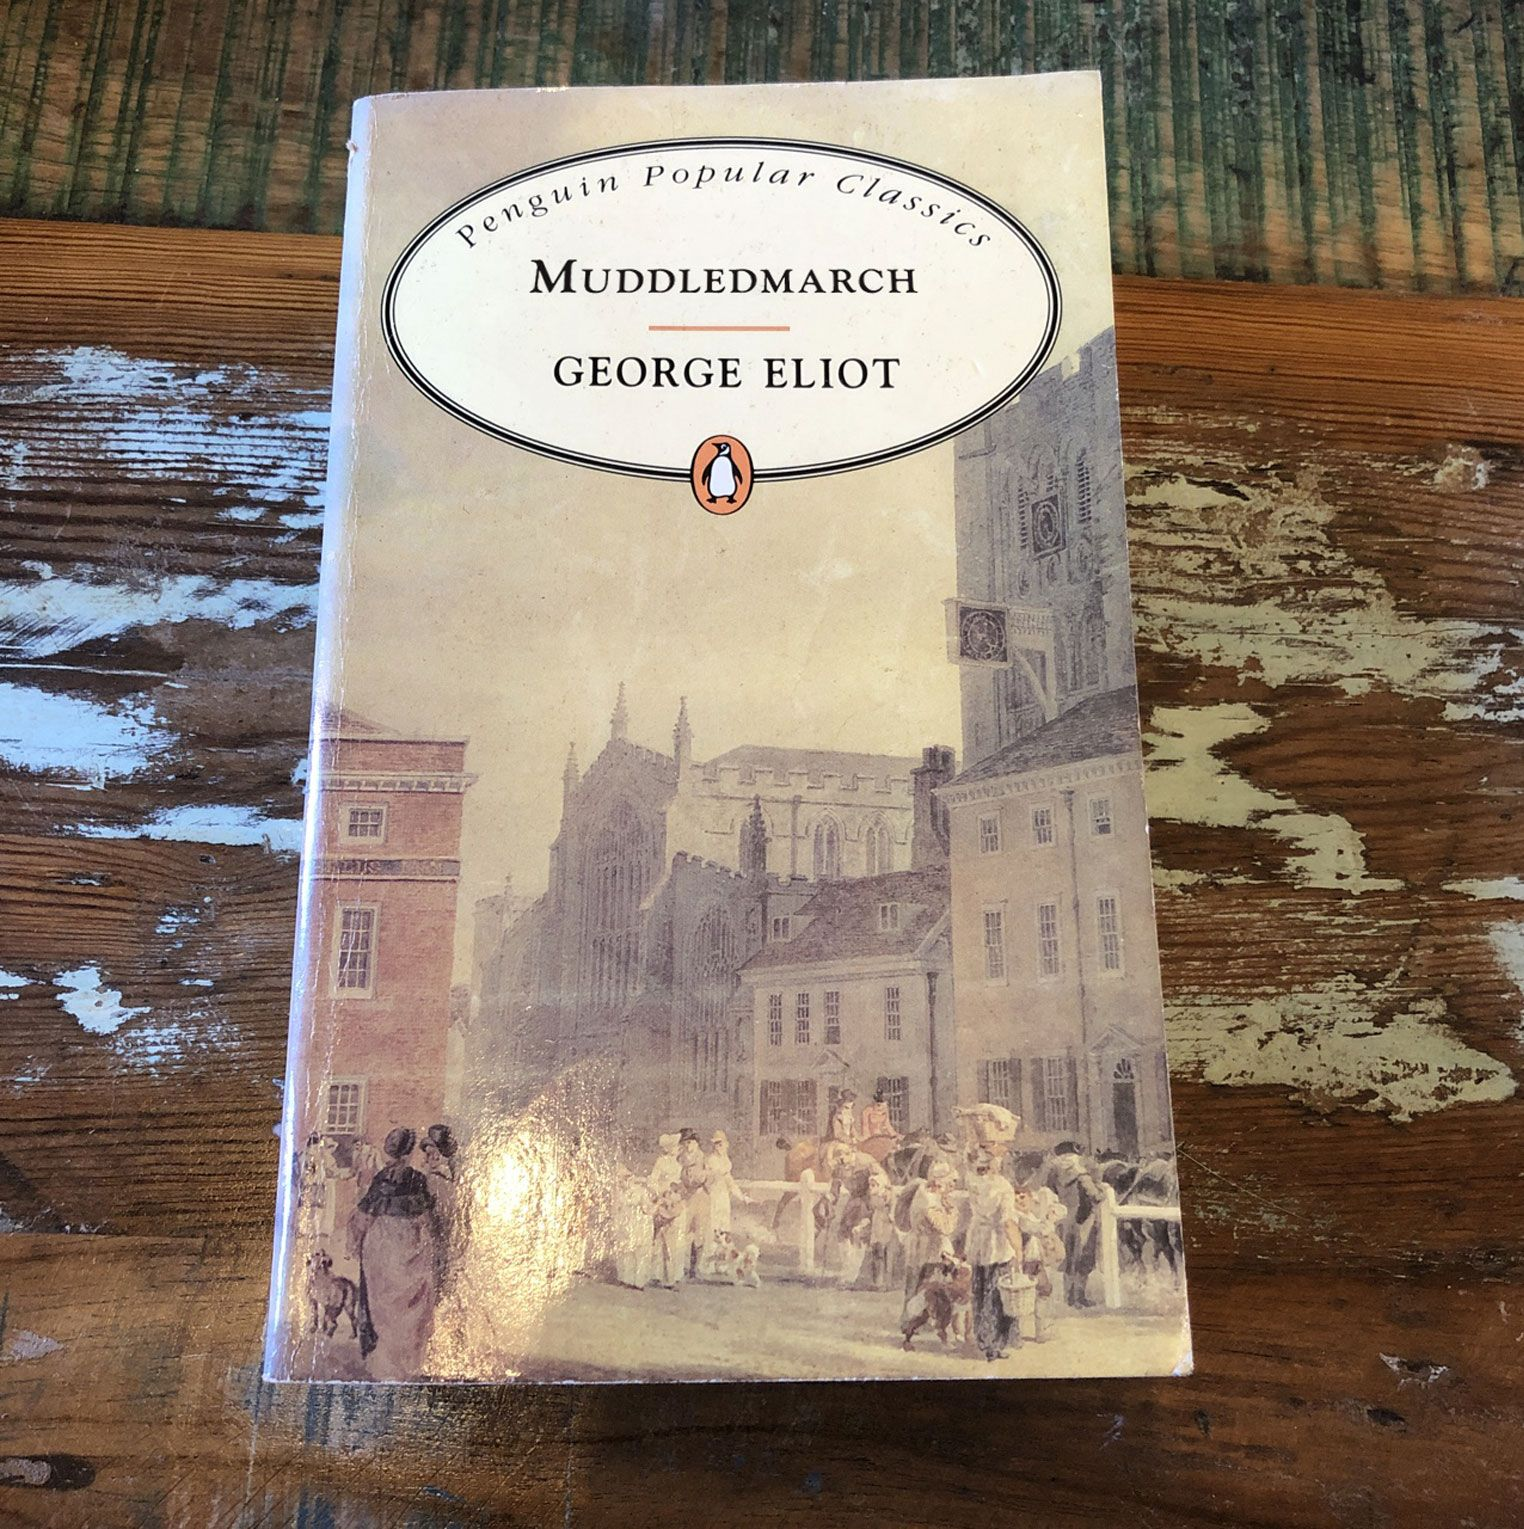 Muddlemarch (Middlemarch, by George Eliot)